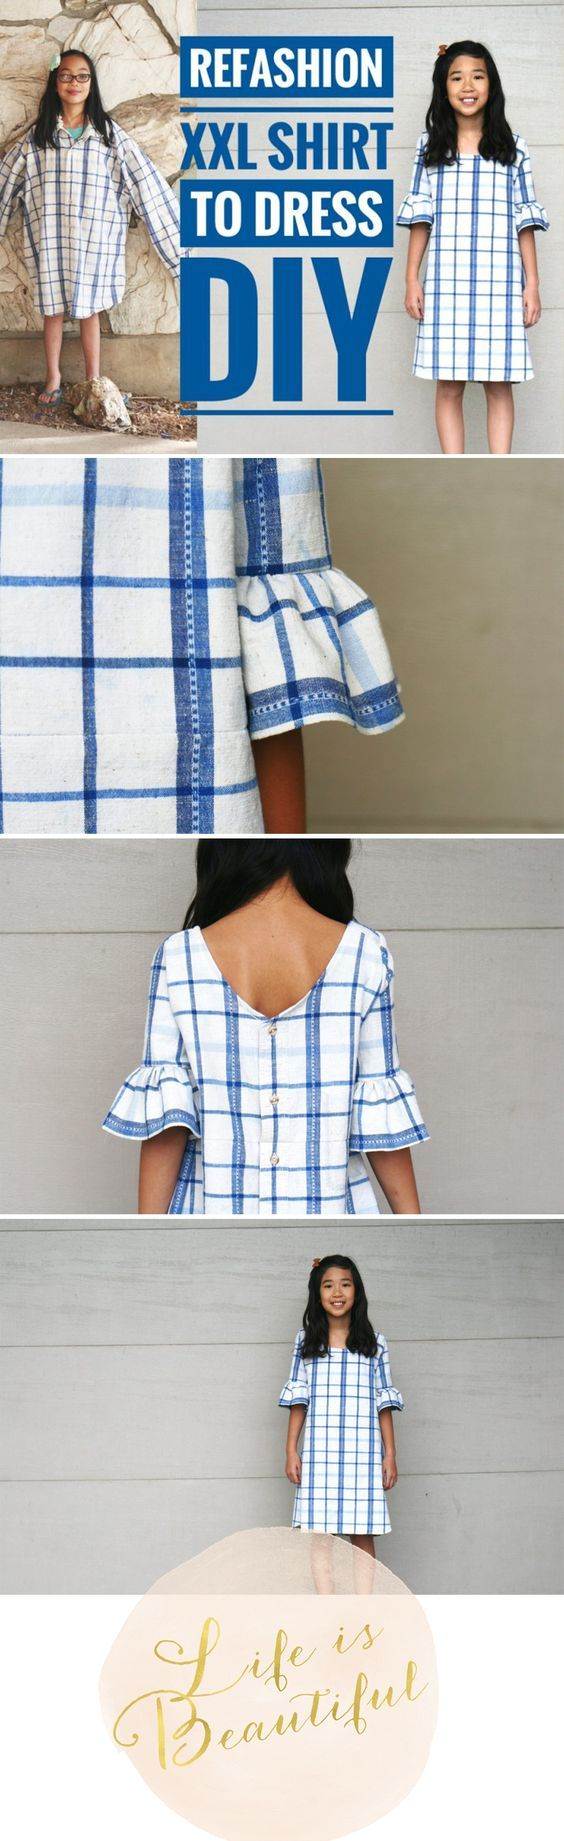 Refashion XXXL Shirt to bell sleeve dress.